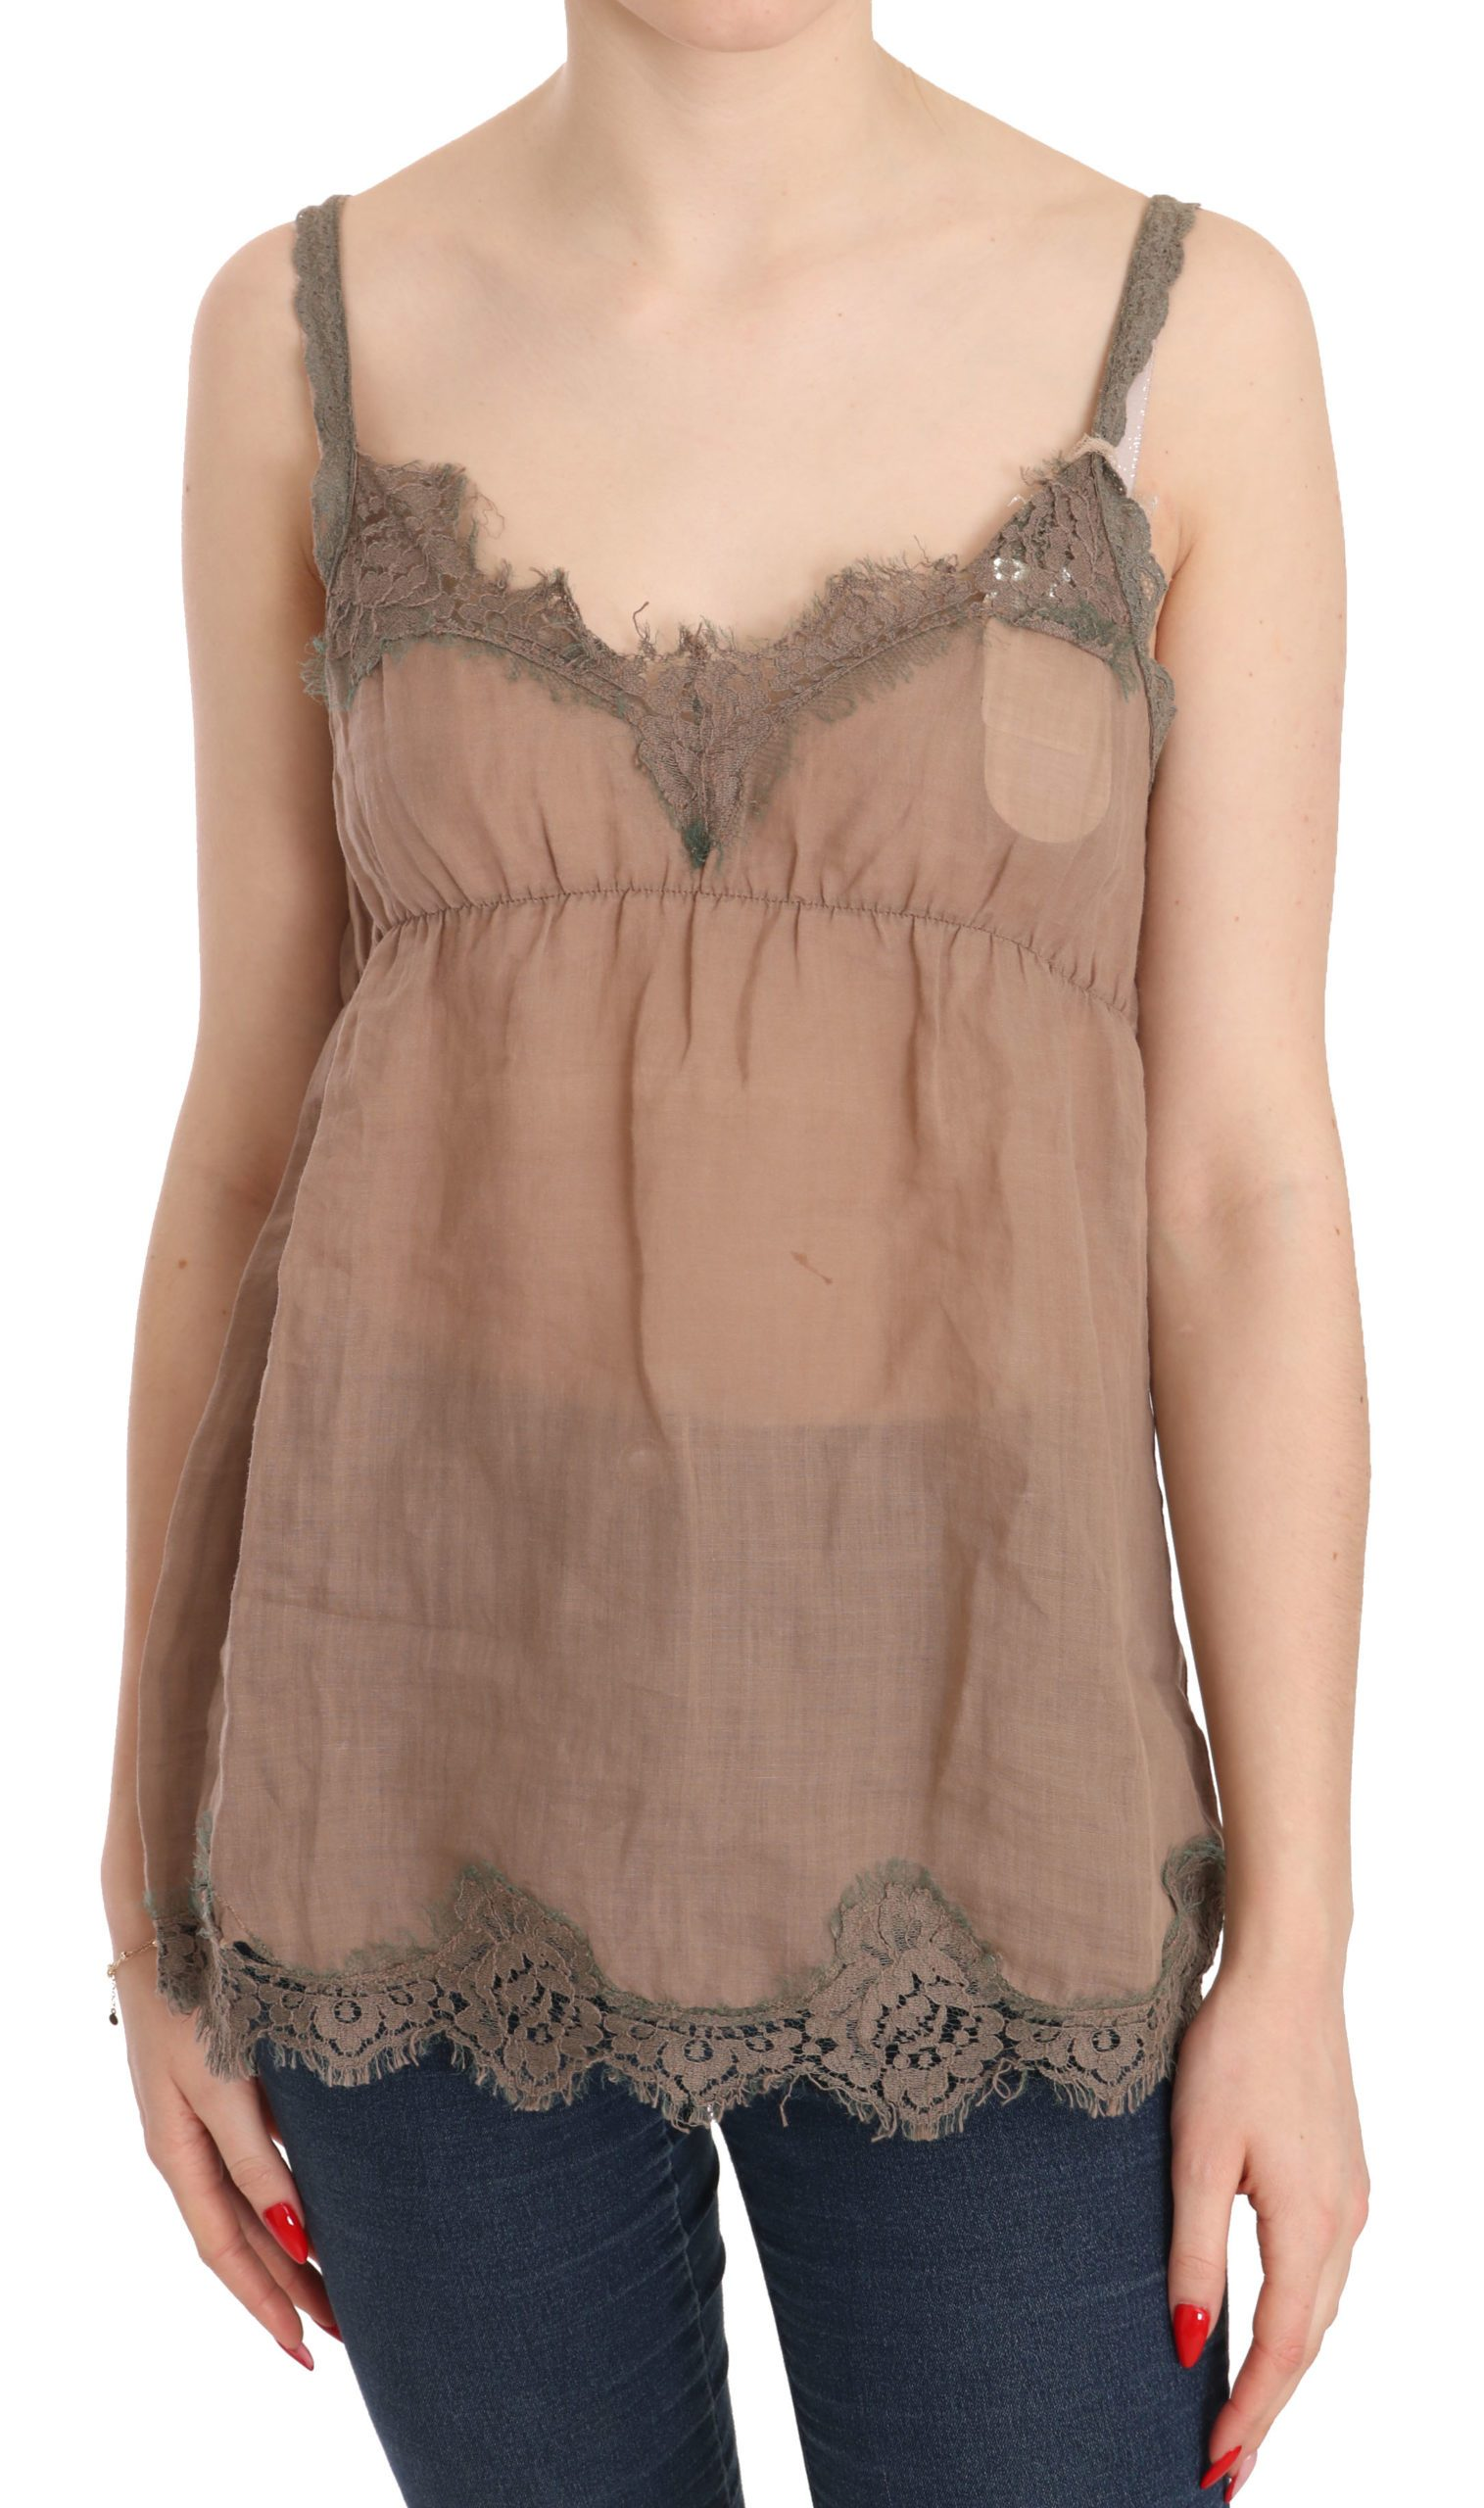 PINK MEMORIES Women's Lace Spaghetti Strap Plunging Top Brown TSH3835 - IT42|M